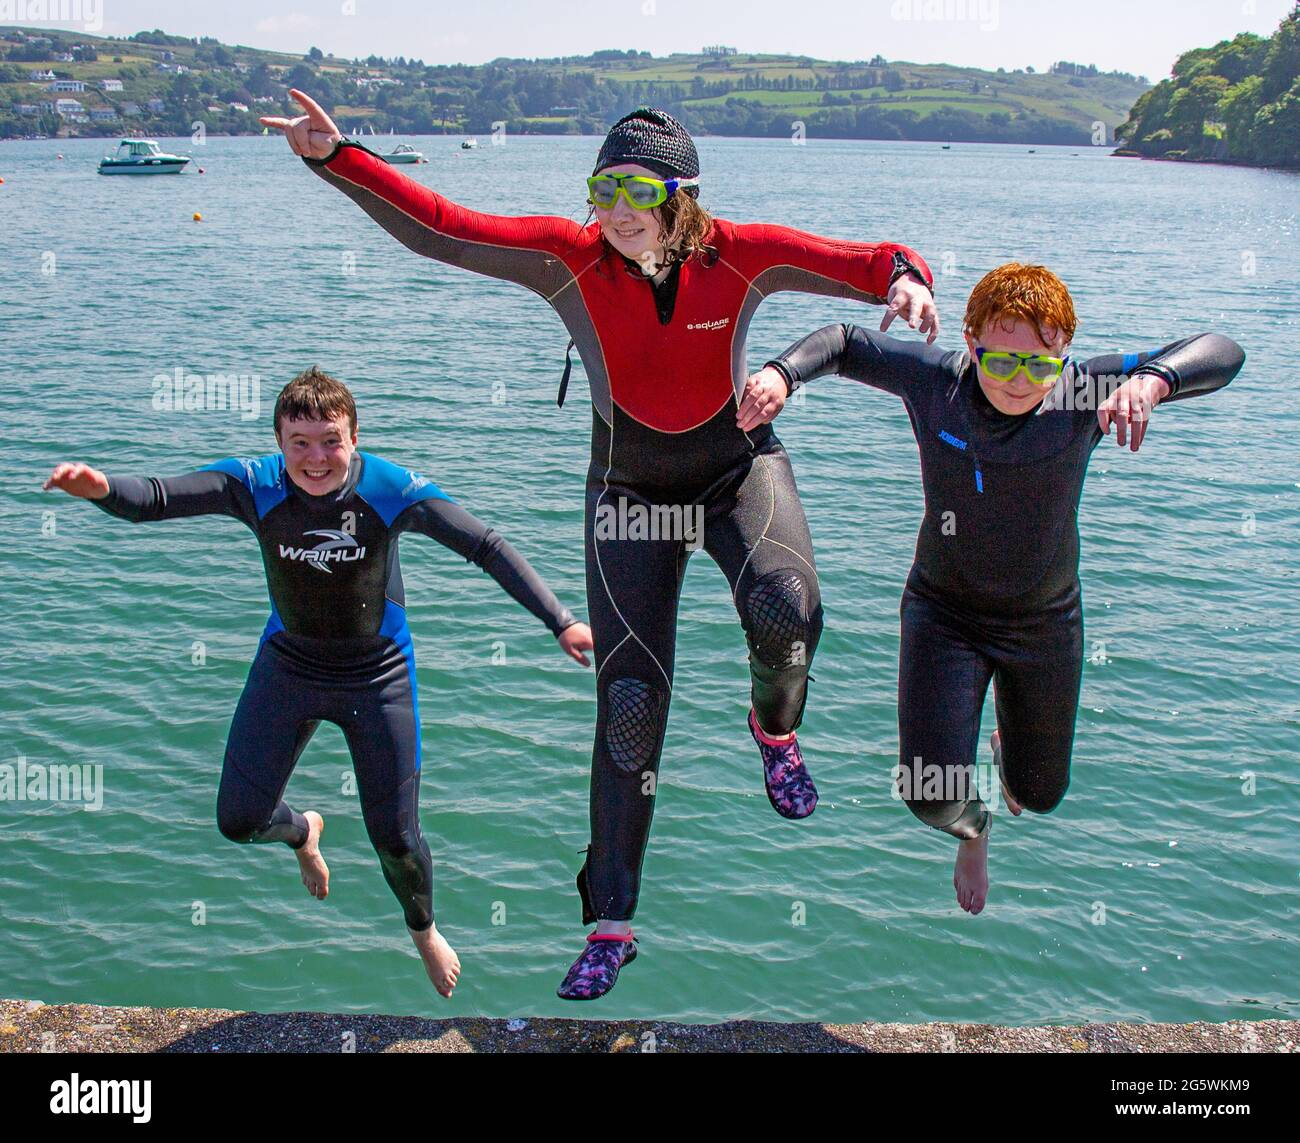 children-jumping-backwards-into-the-sea-on-summer-holiday-2G5WKM9.jpg